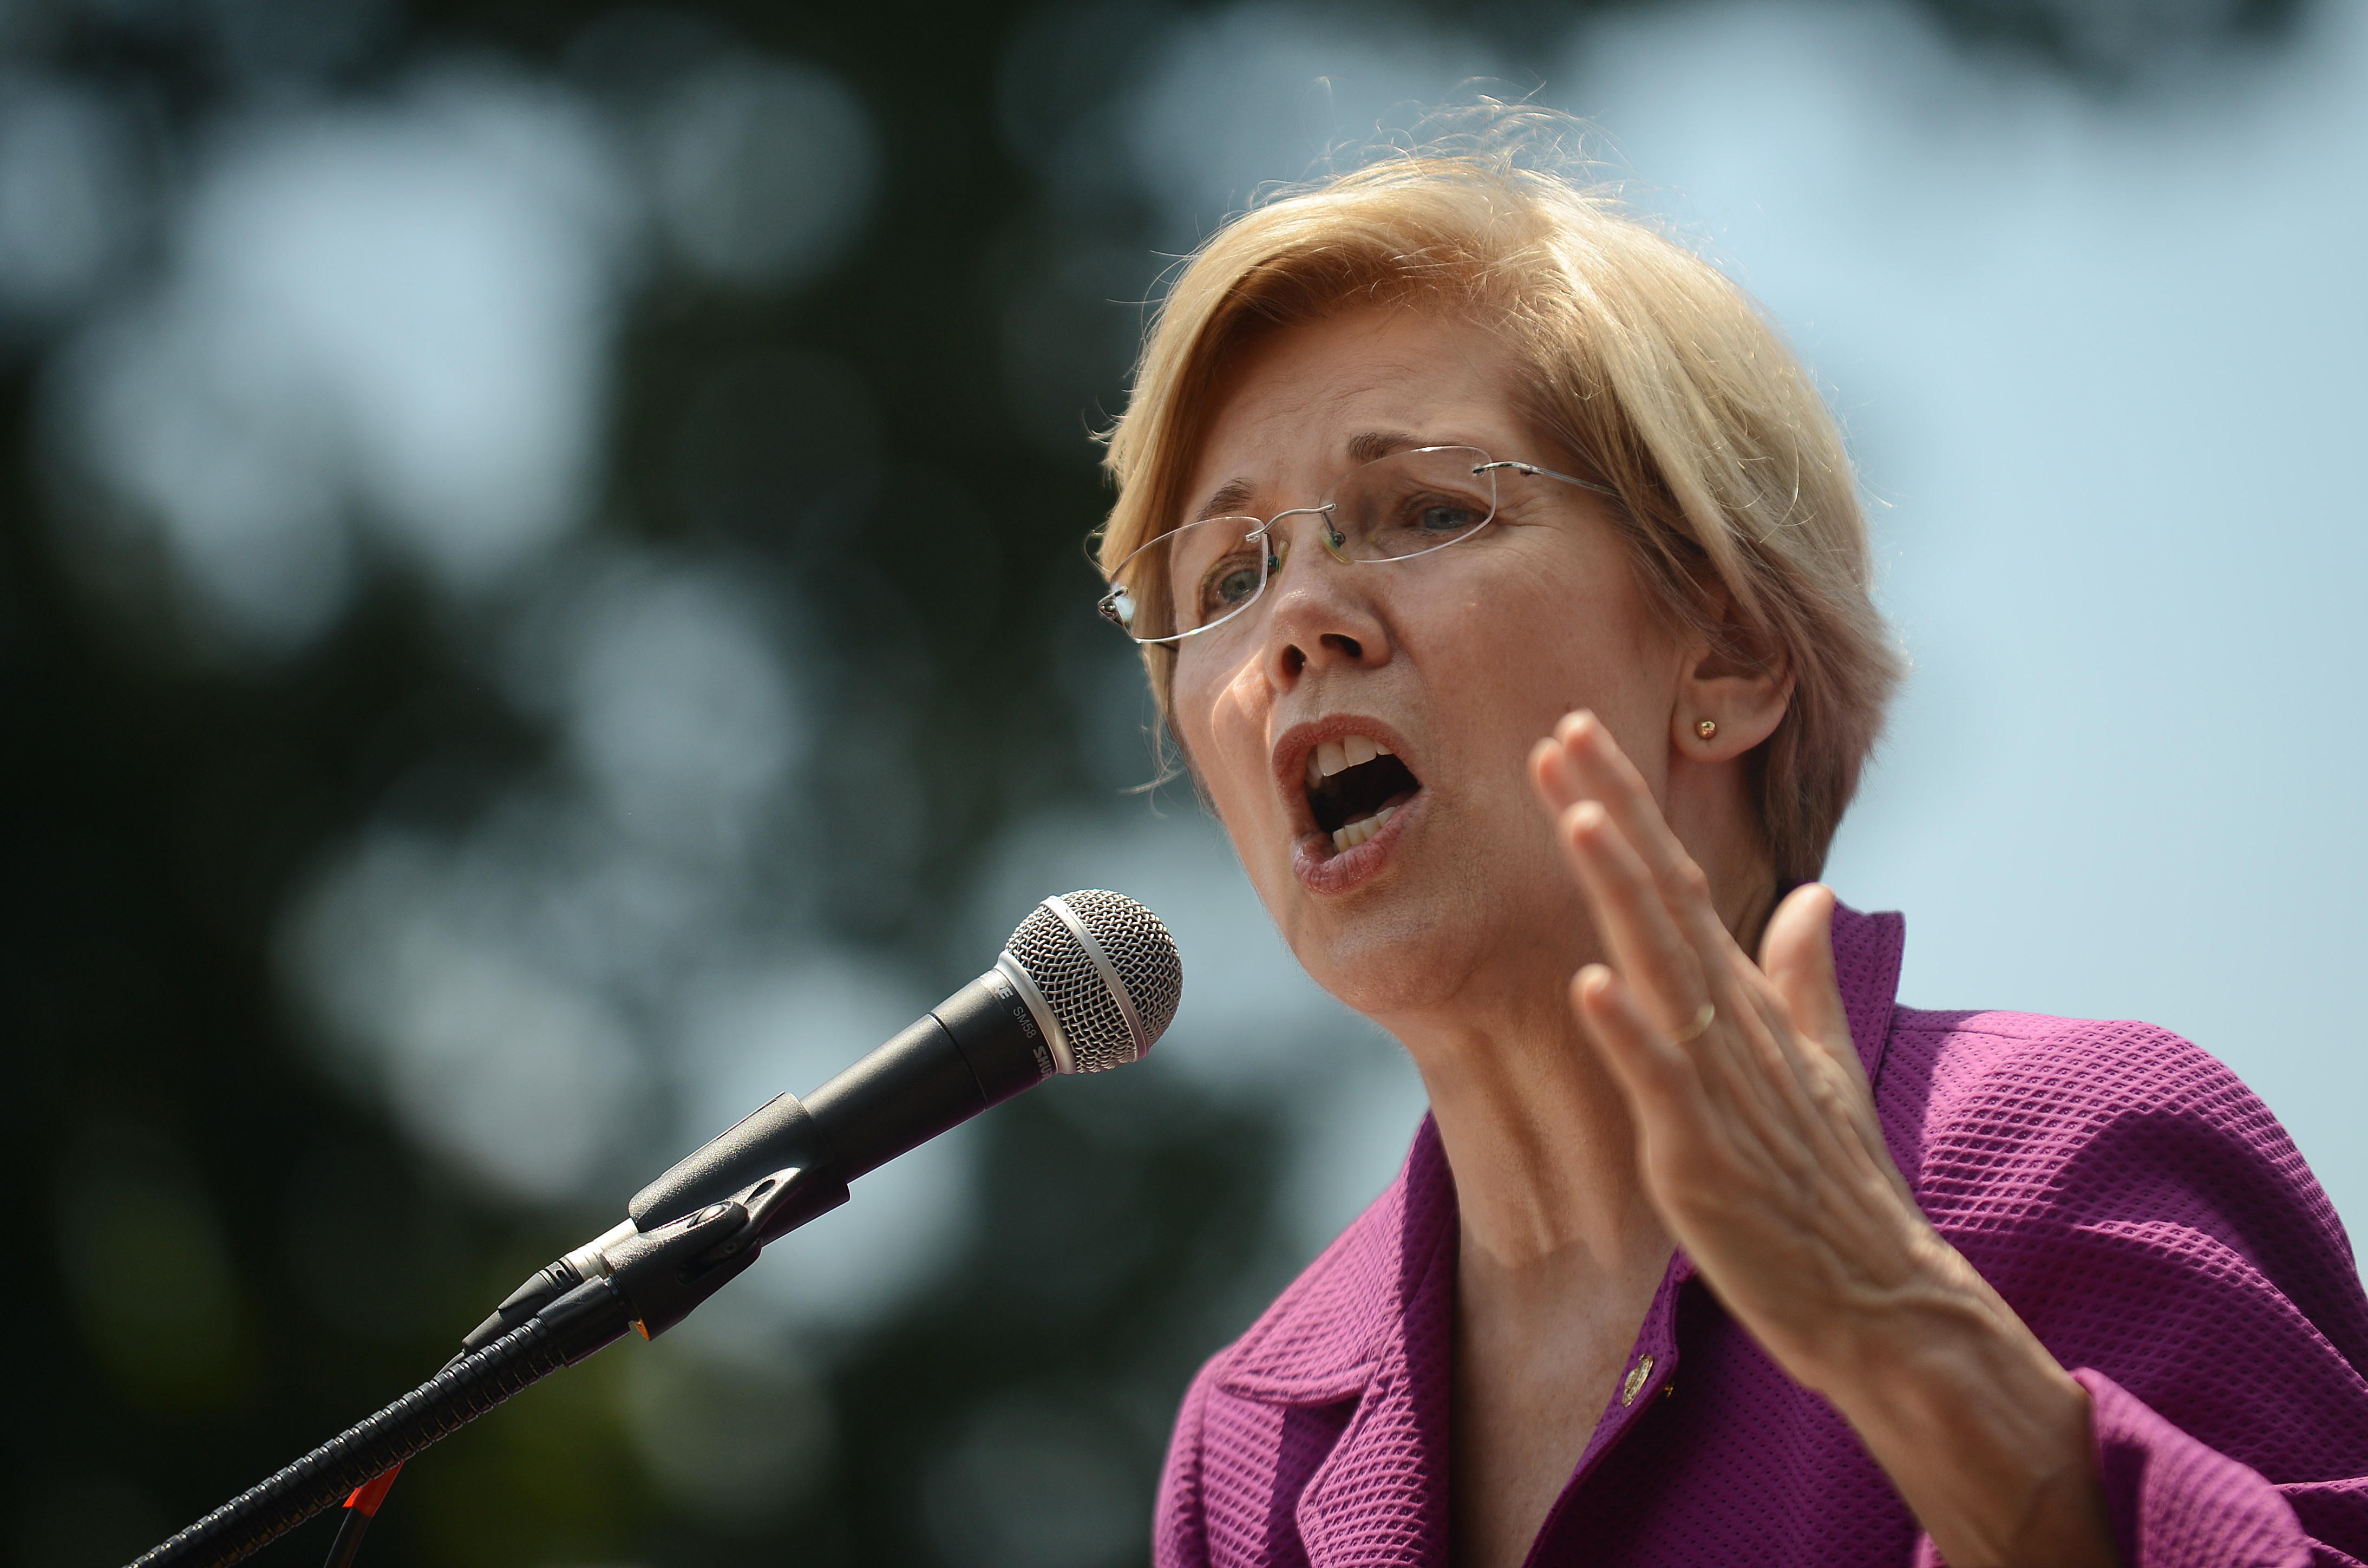 Massachusetts Sen. Elizabeth Warren speaks at a rally to oppose the repeal of the Affordable Care Act and its replacement on Capitol Hill on June 21, 2017 in Washington, D.C.